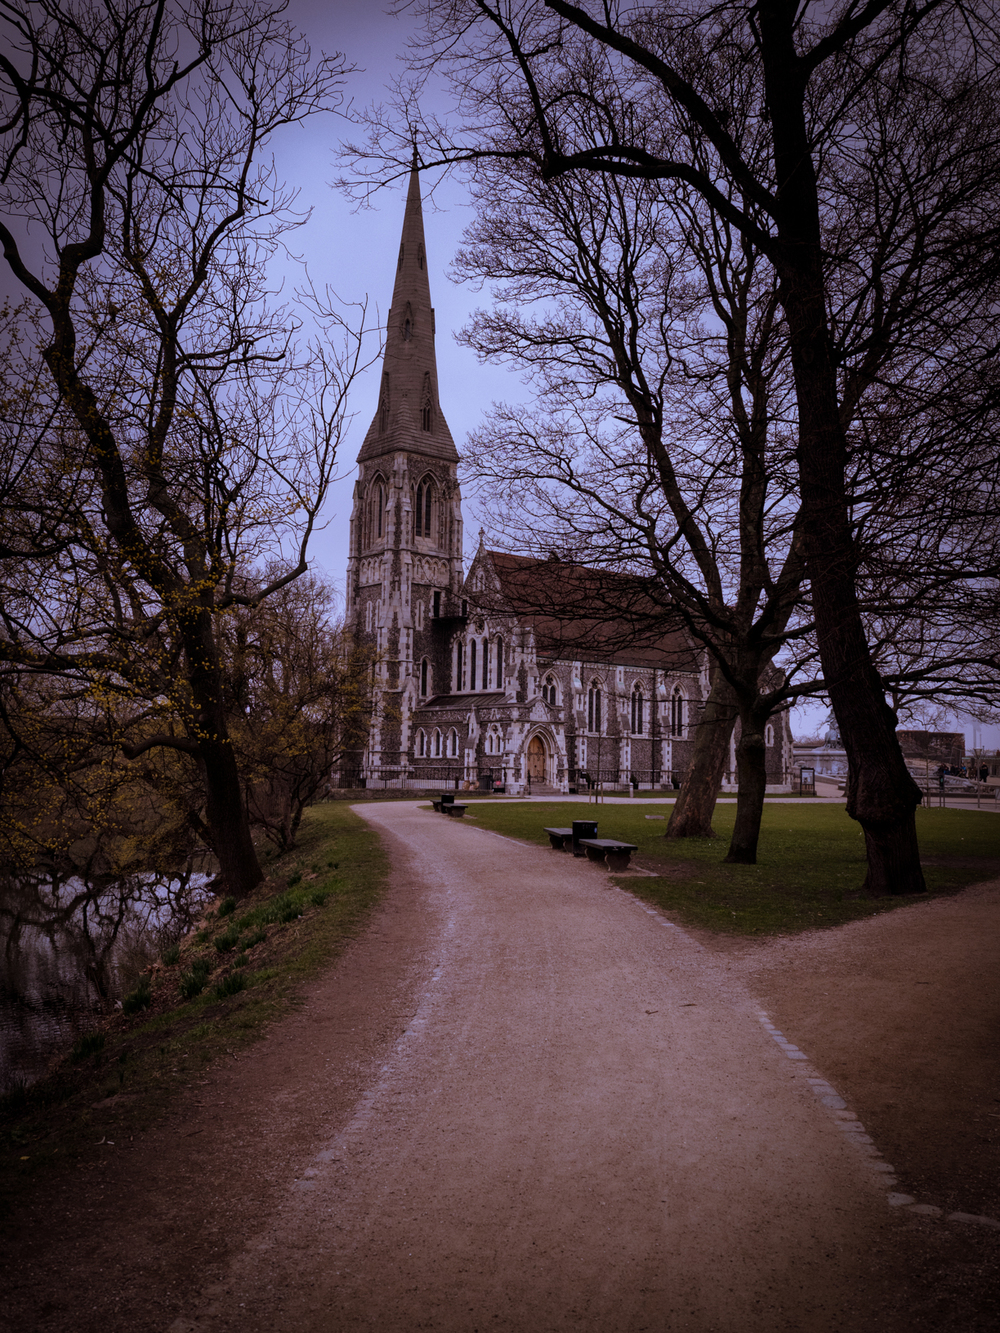 the path to st alban's as i approached - loved the trees framing it.